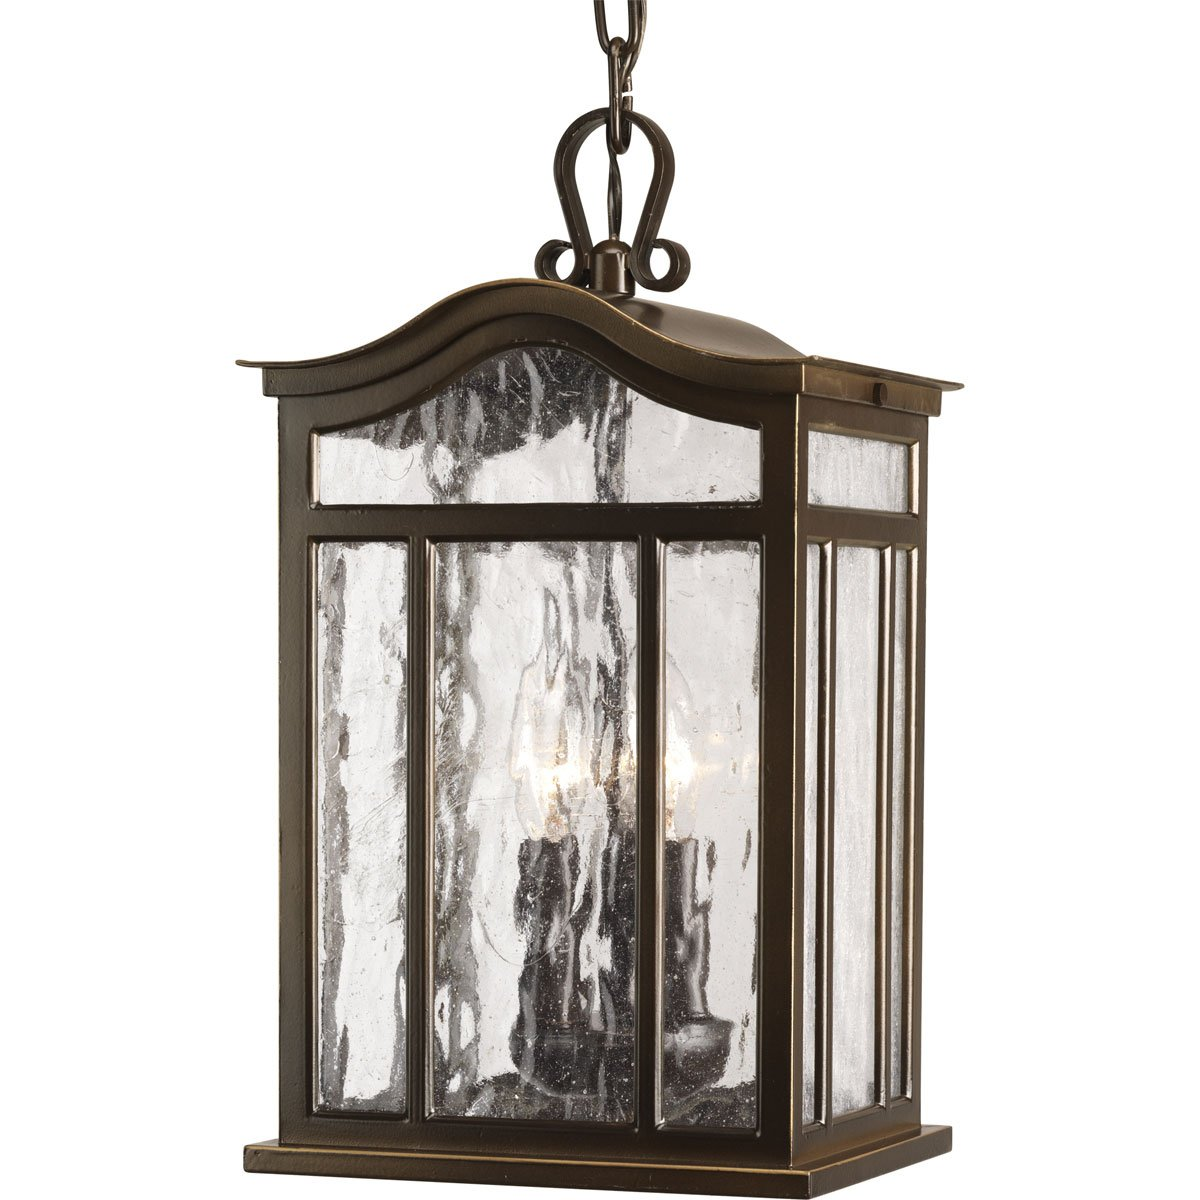 Progress Lighting P5502-108 3-Light Outdoor Hanging Lantern with Unique Arched Roof and Top Ribbon Scrolled Loops with Arching Arms, Oil Rubbed Bronze